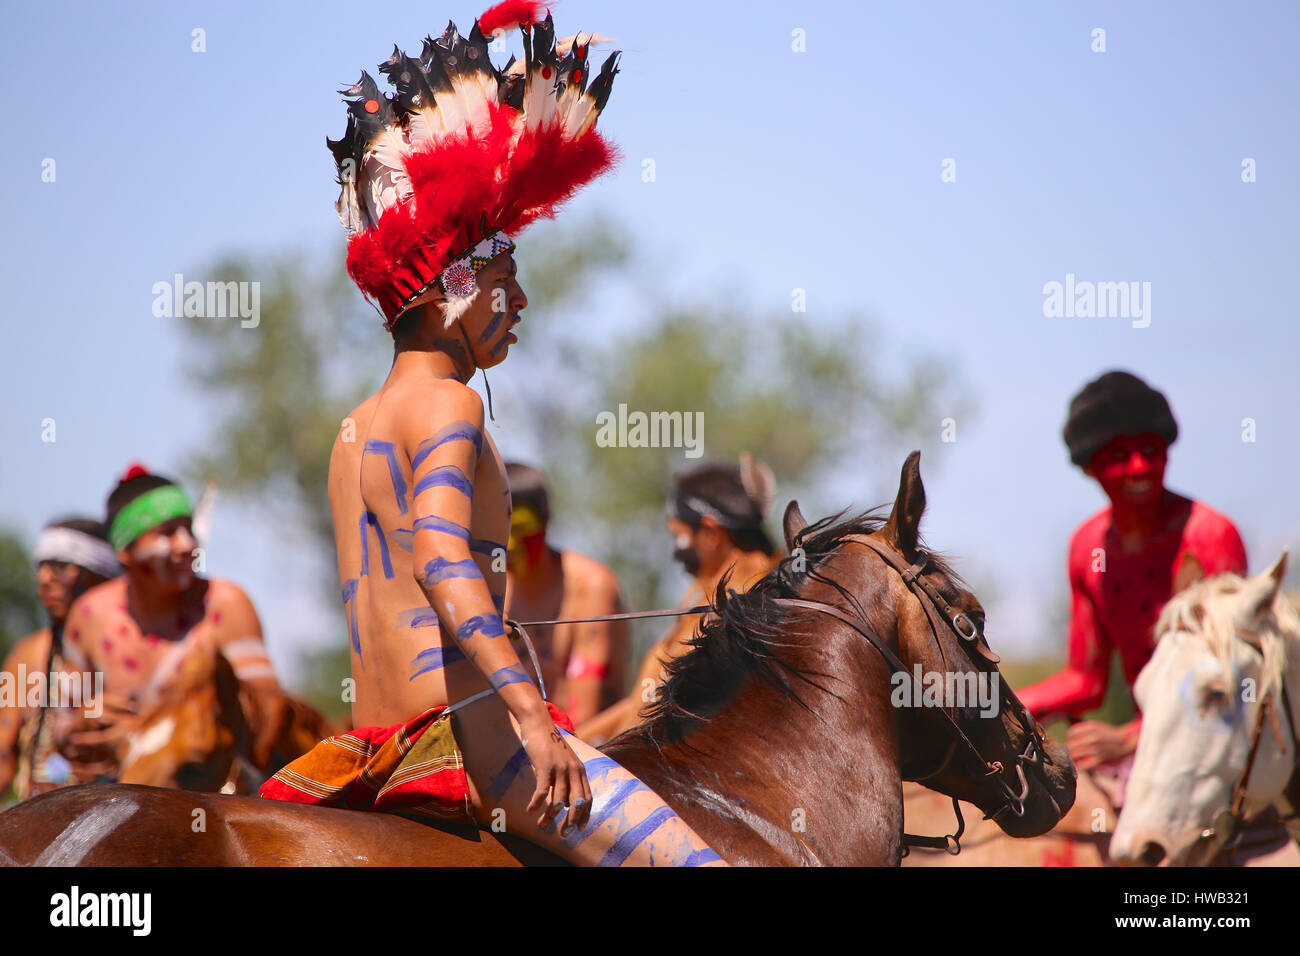 Native American Indians Crazy Horse Battle of Little Big Horn Custer's Last Stand reenactment actor on horseback Stock Photo